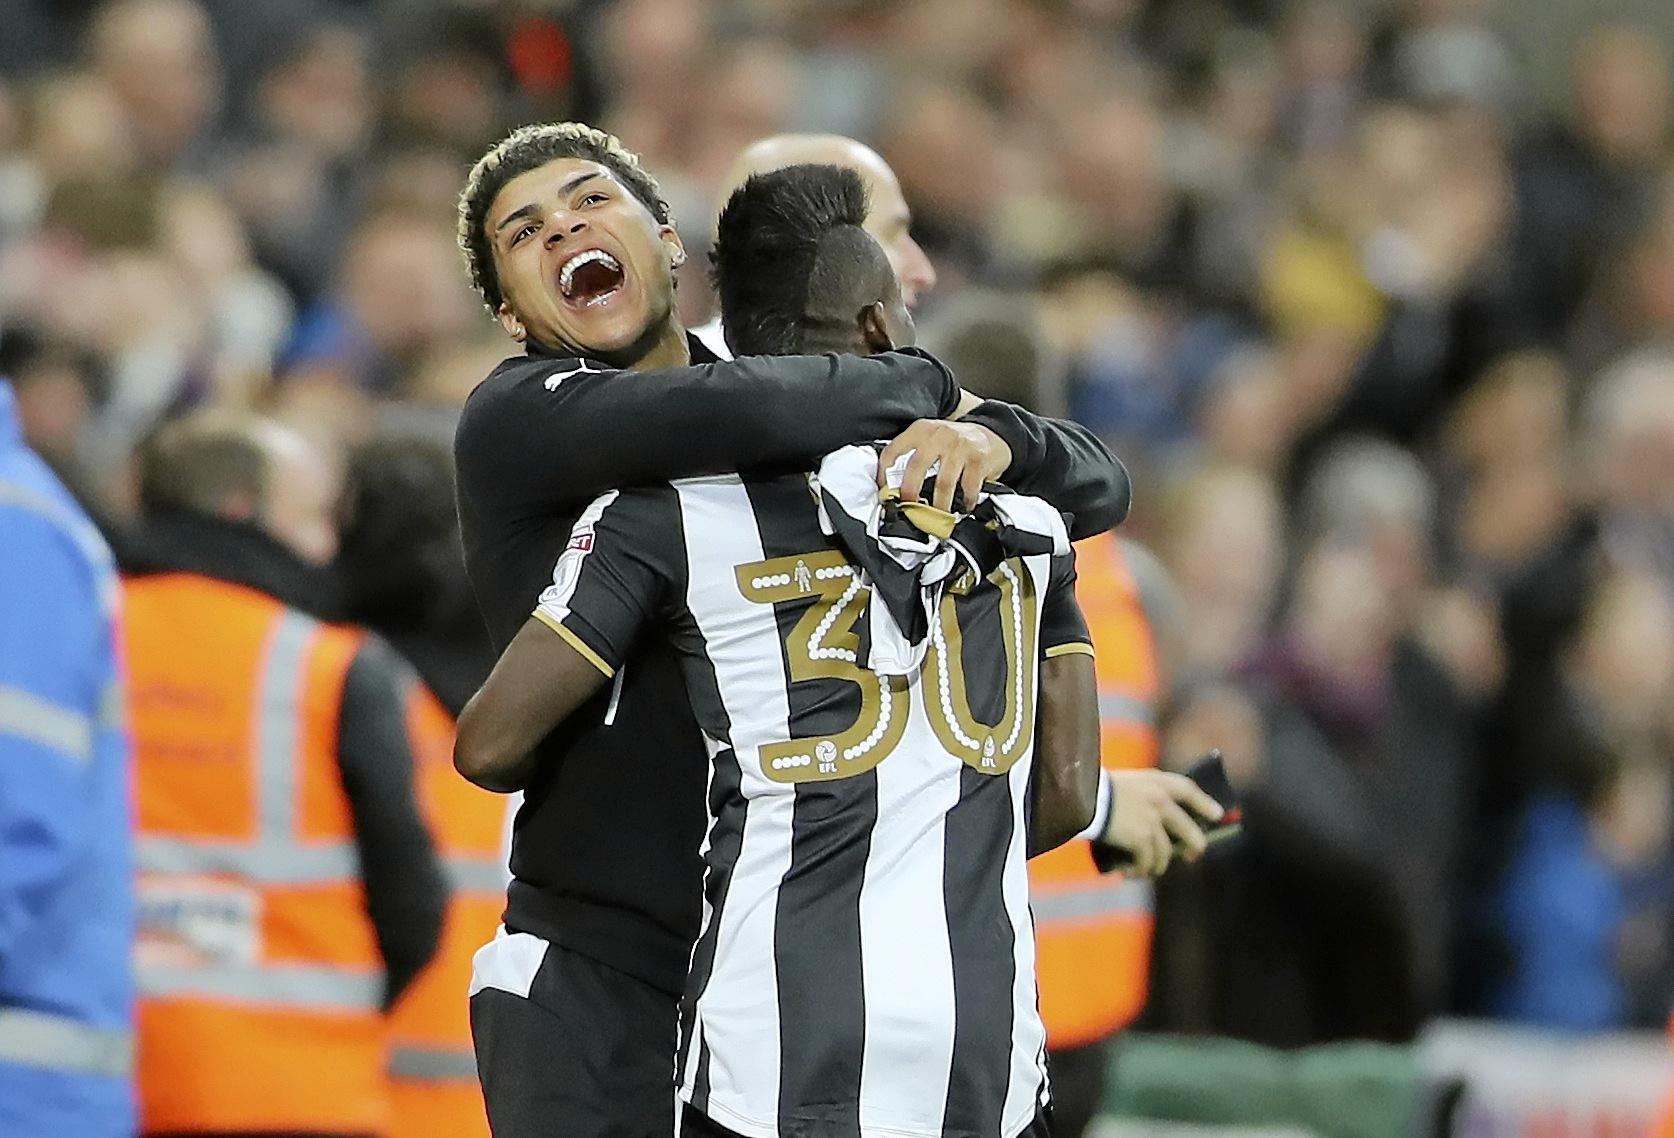 Newcastle United's Christian Atsu (right) celebrates promotion with a clubmate.